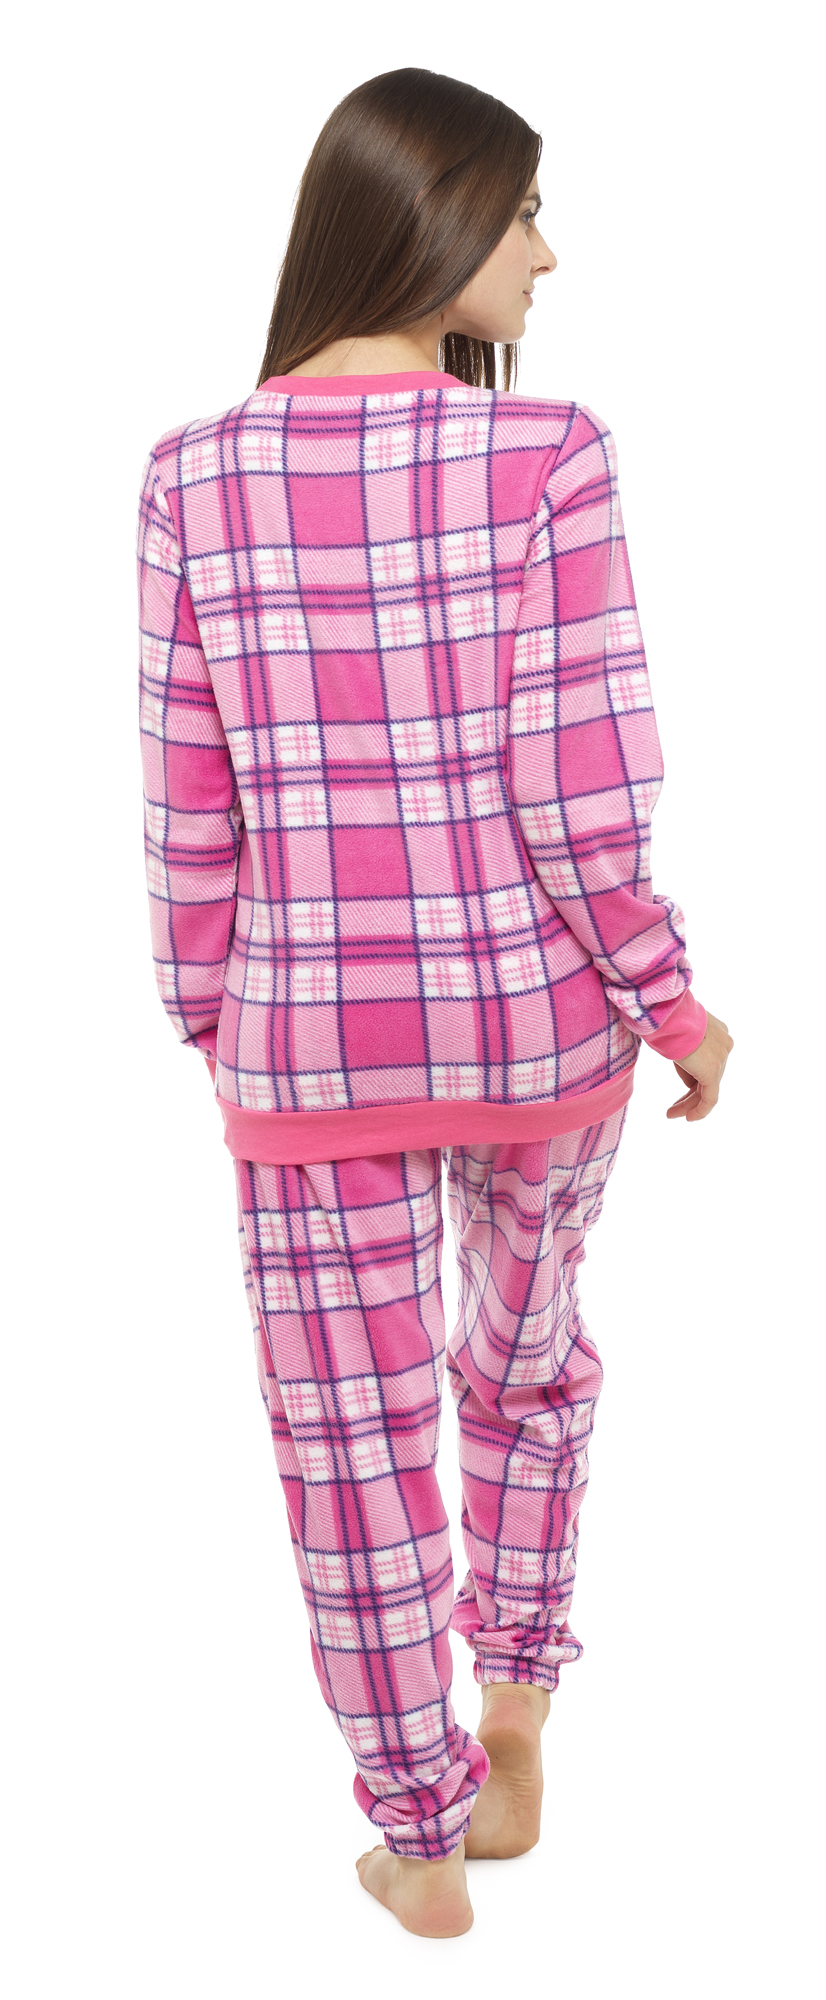 i-Smalls-Women-039-s-Check-Print-Twosie-Pyjama-Set-in-Super-Soft-Microfleece